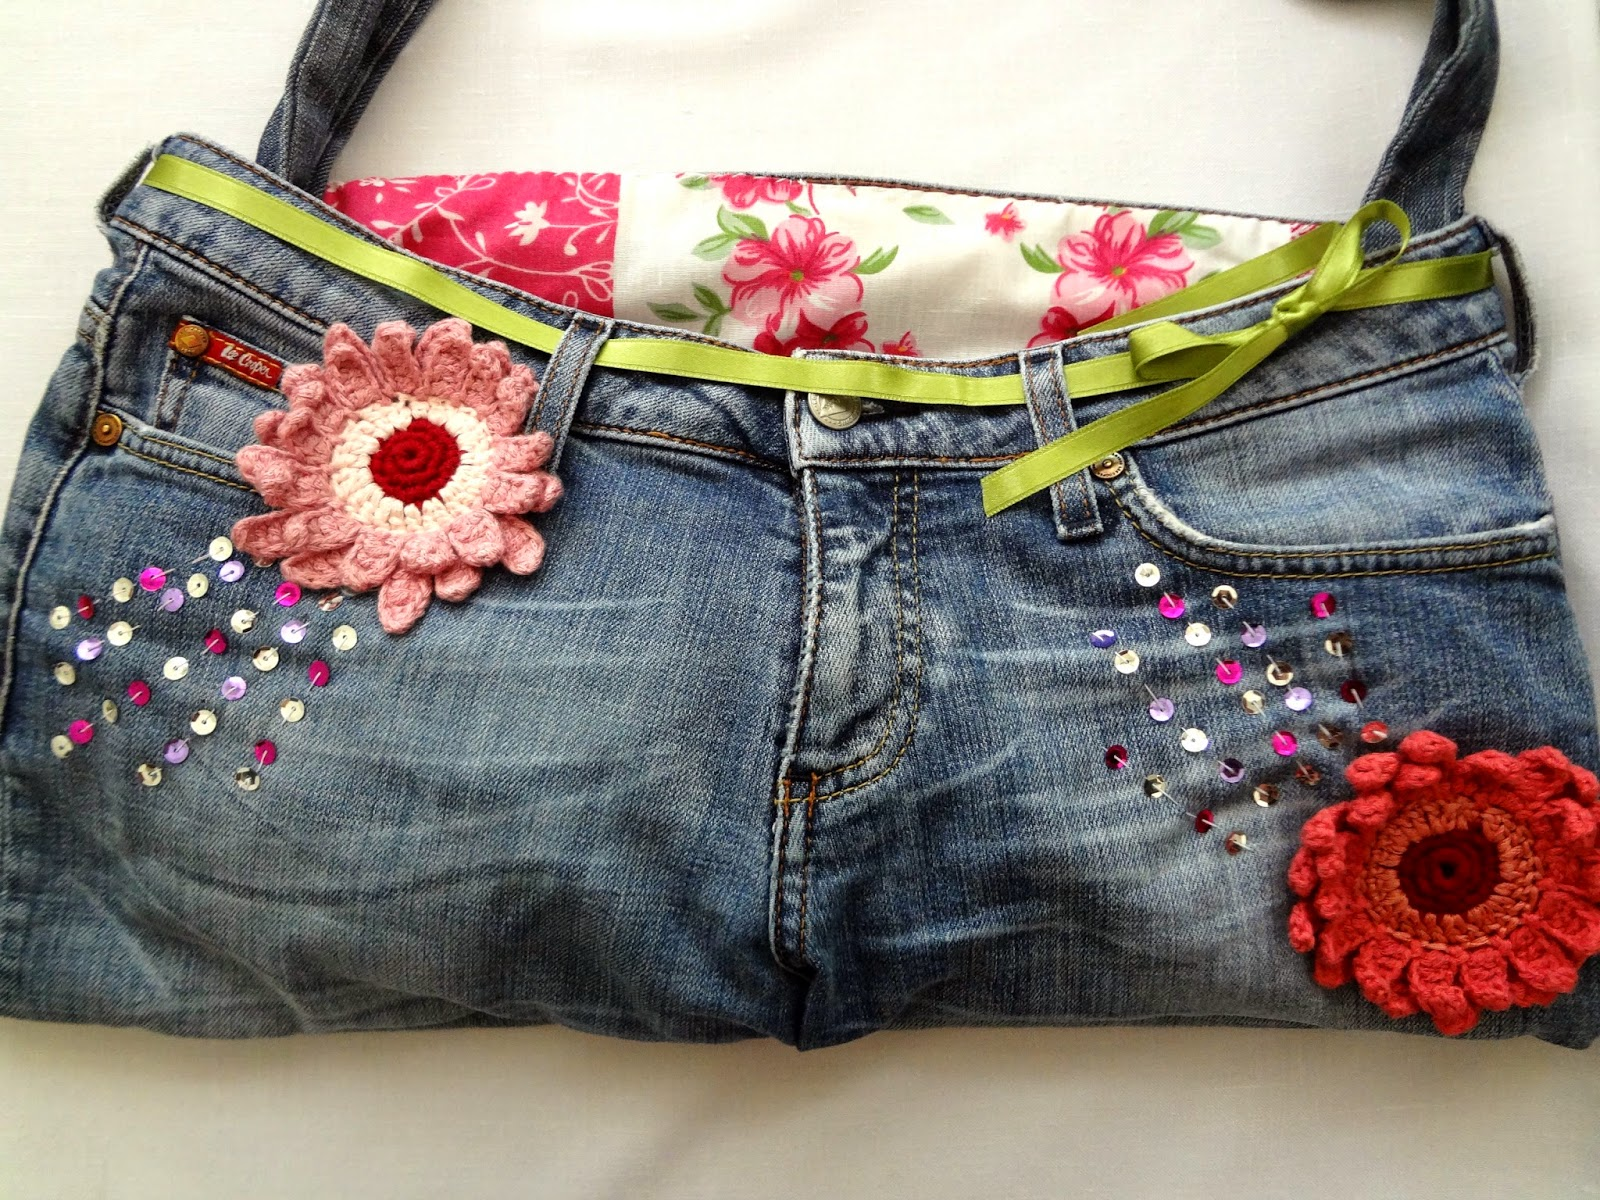 how to make a beach bag out of jeans